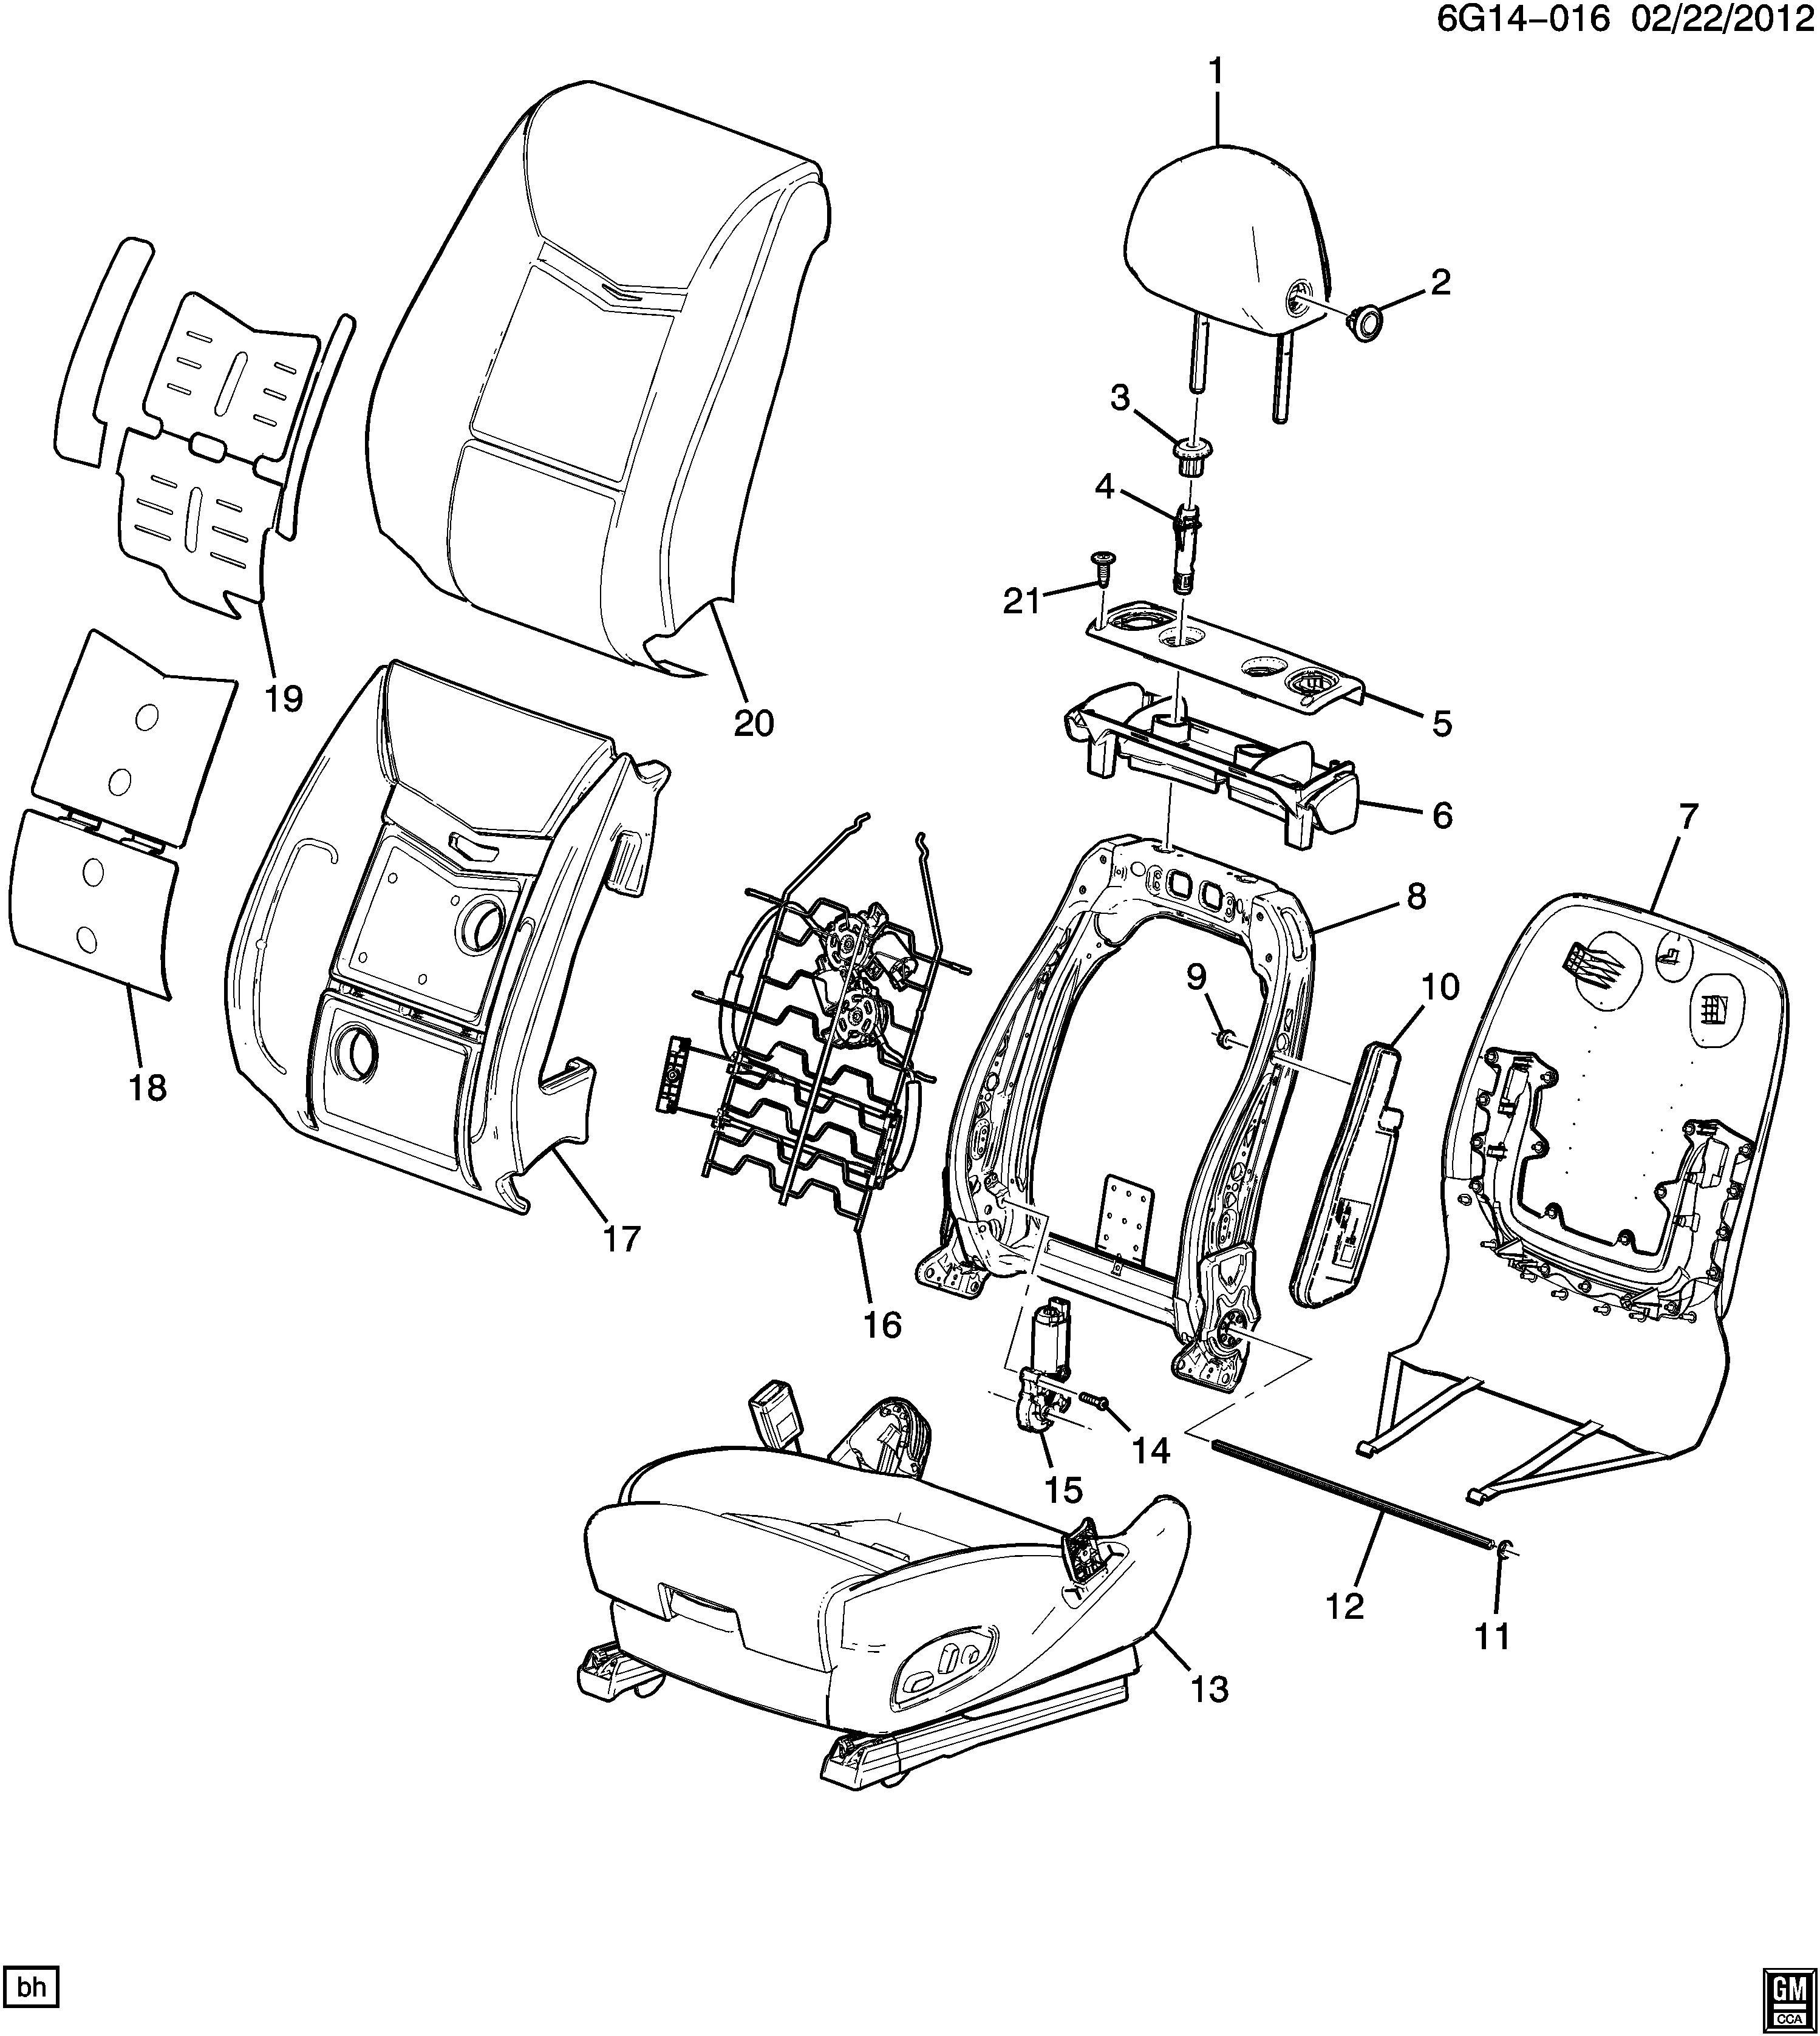 Buick LaCrosse Actuator. Front seat back reclining